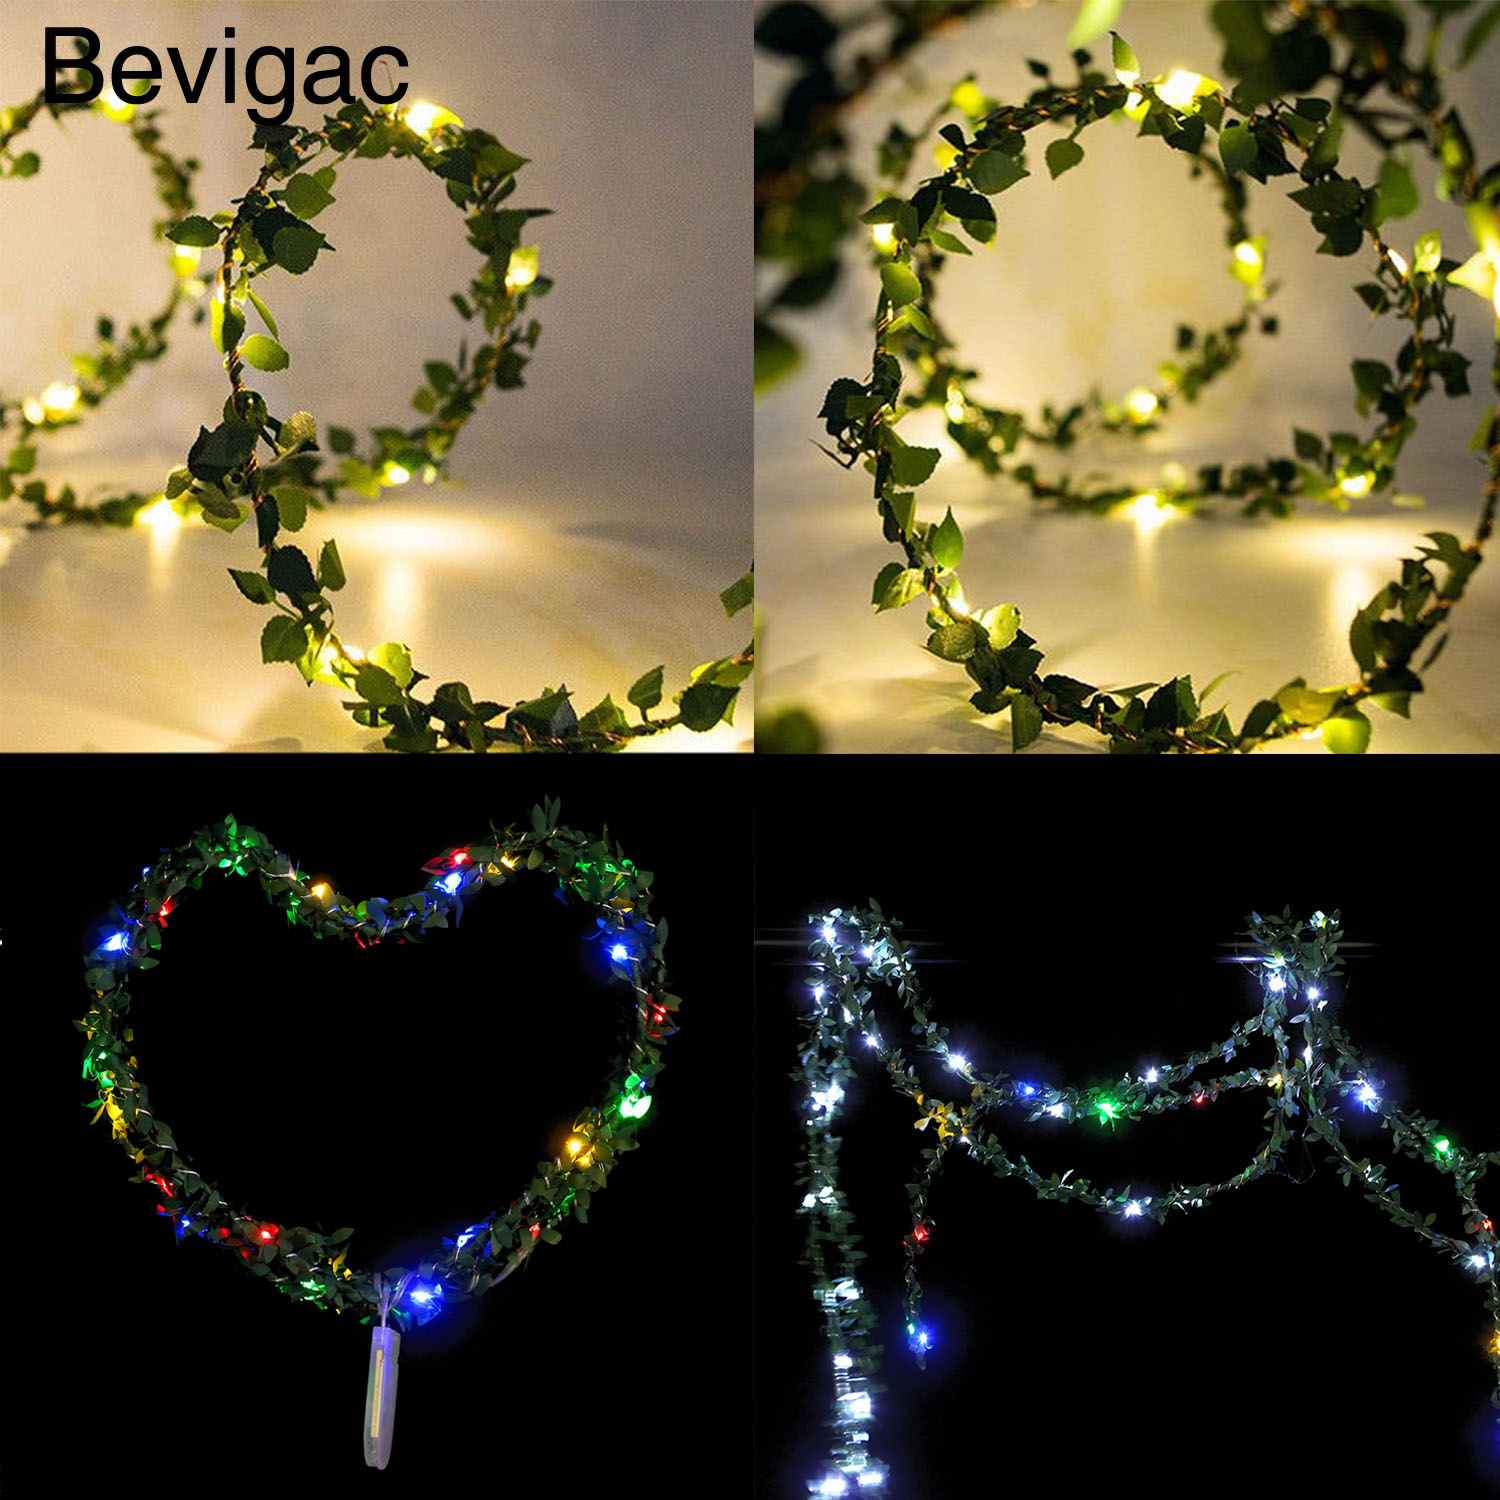 Bevigac 2m 20 LED Artificial Vine Copper String Wire Lights Battery Operated for Christmas Halloween Wedding Party Decoration